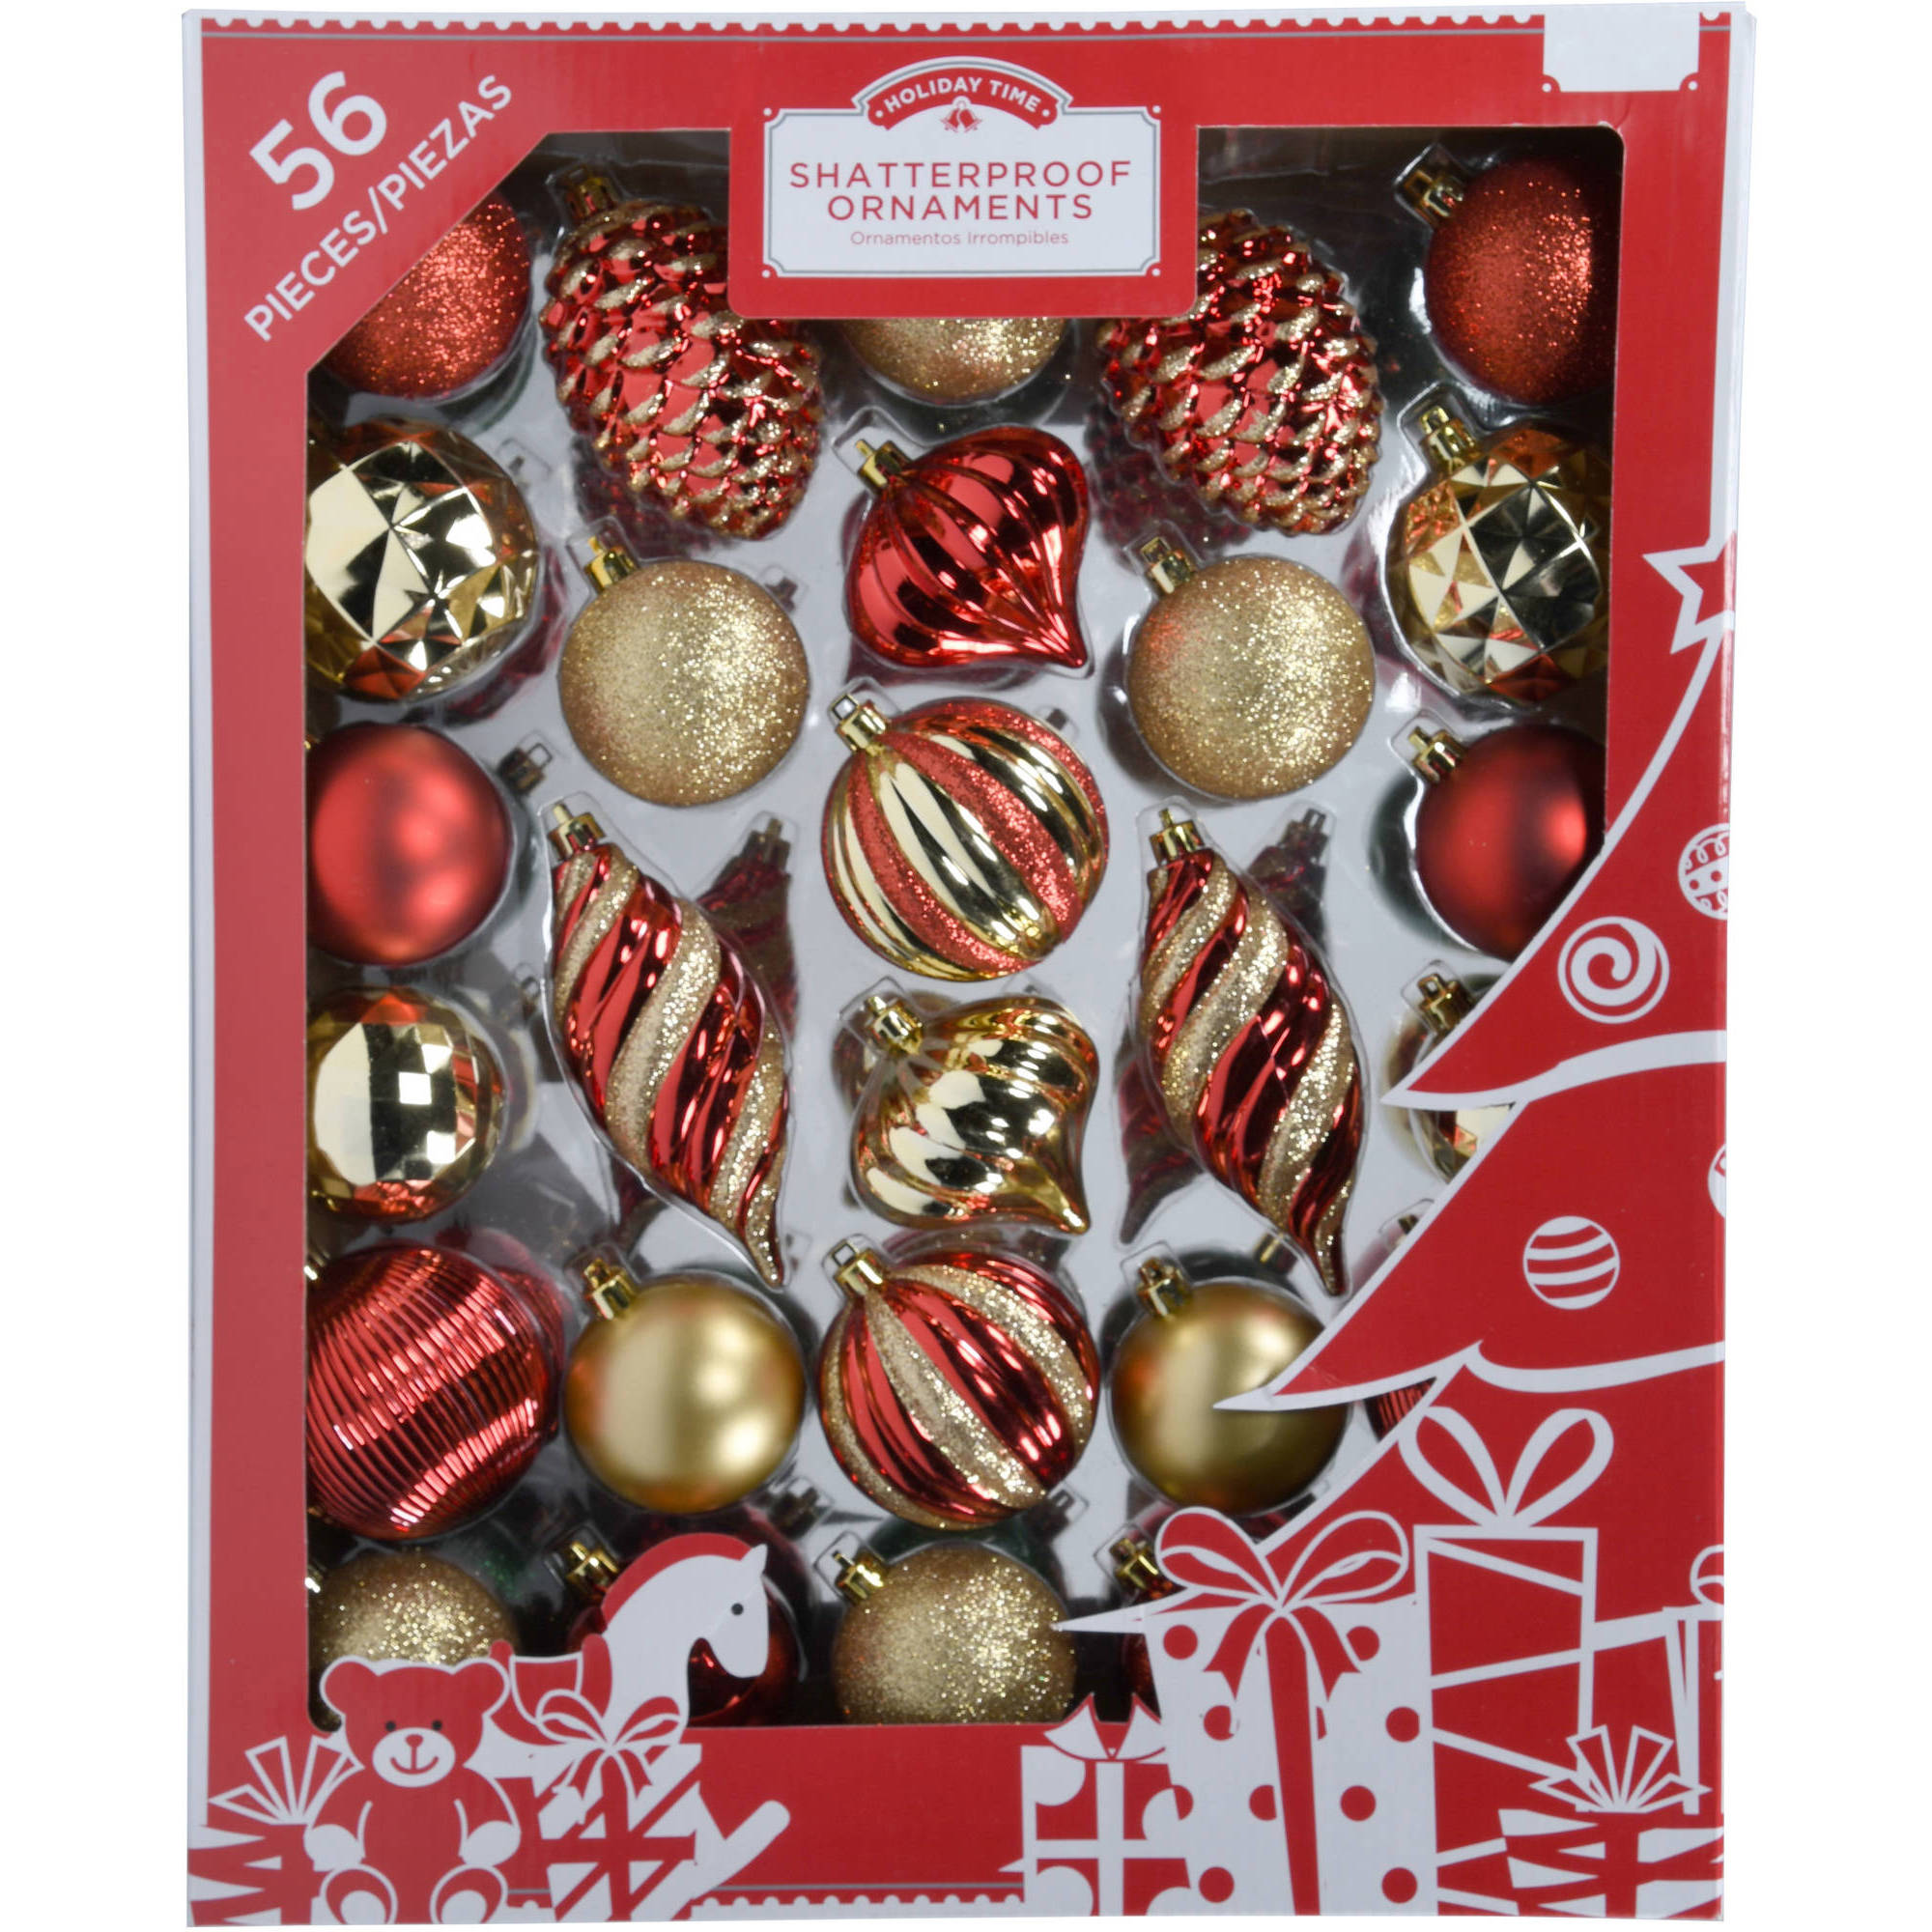 Holiday Time 60mm Christmas Ornaments Traditional Shatterproof, Set of 56